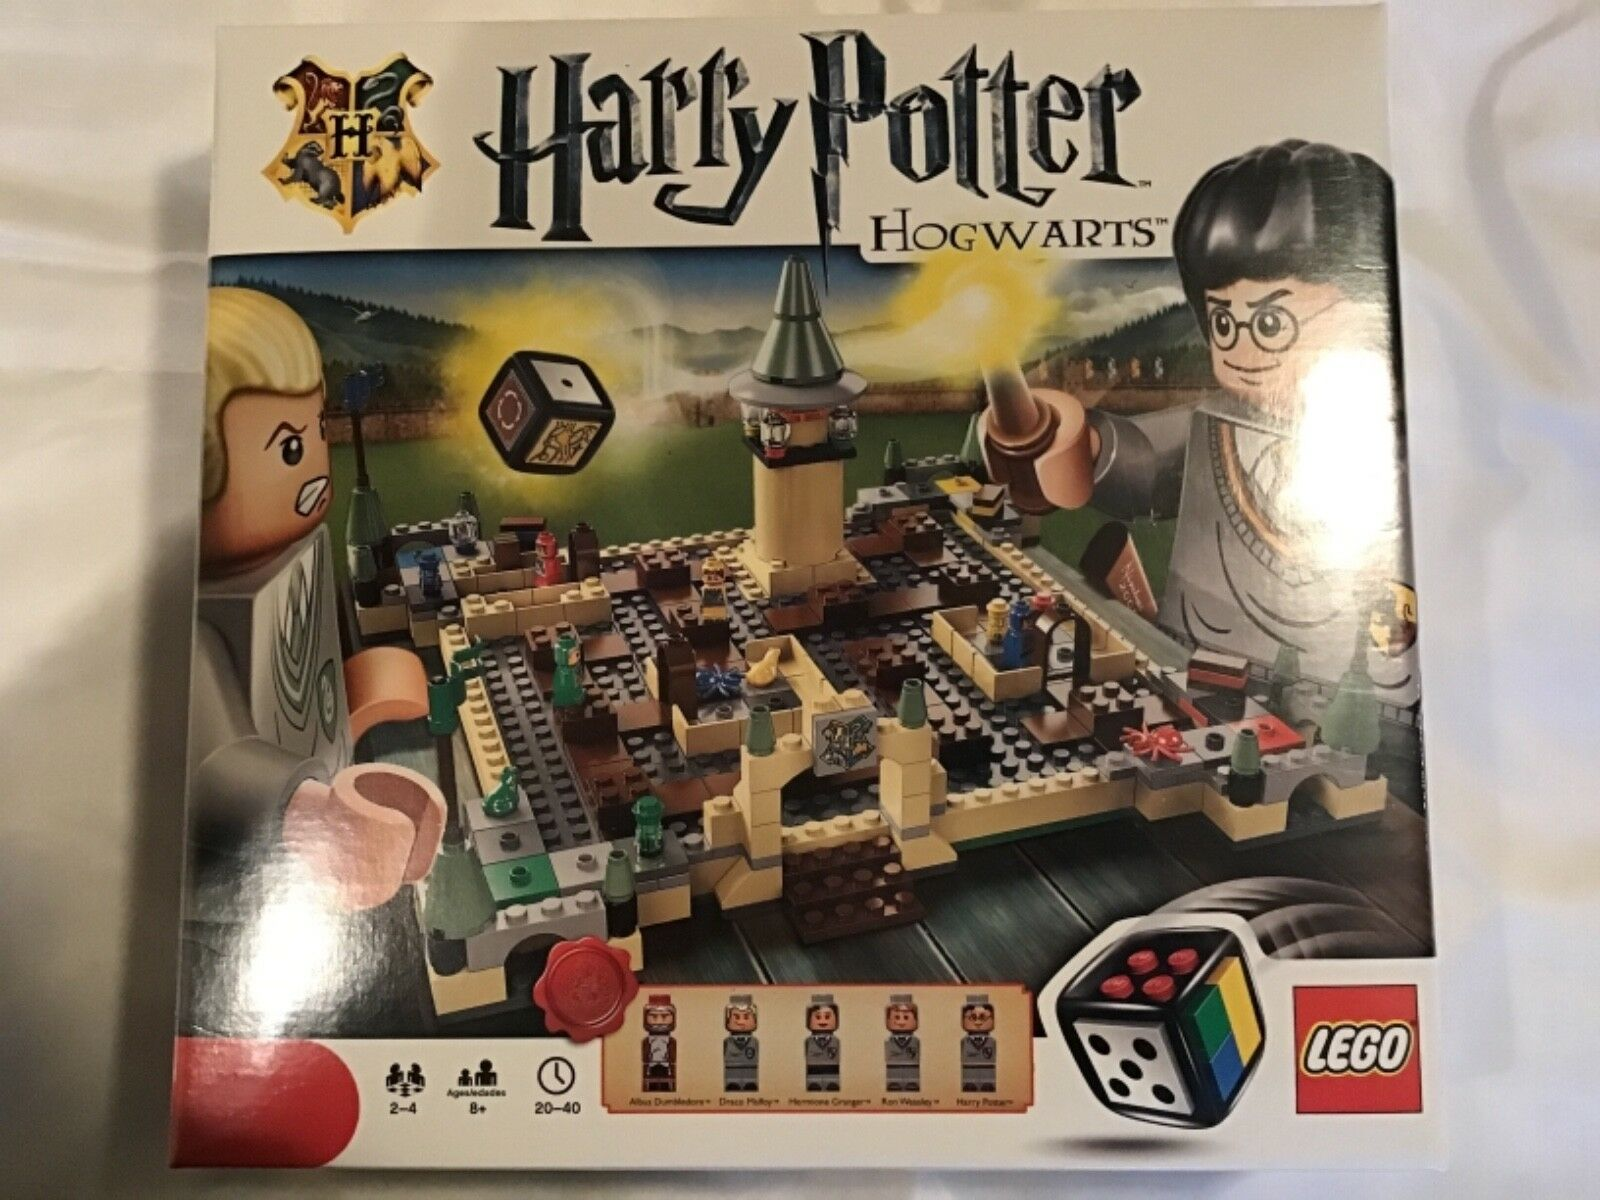 New LEGO 3862 Harry Potter Hogwarts Castle Game Rare Christmas Holiday